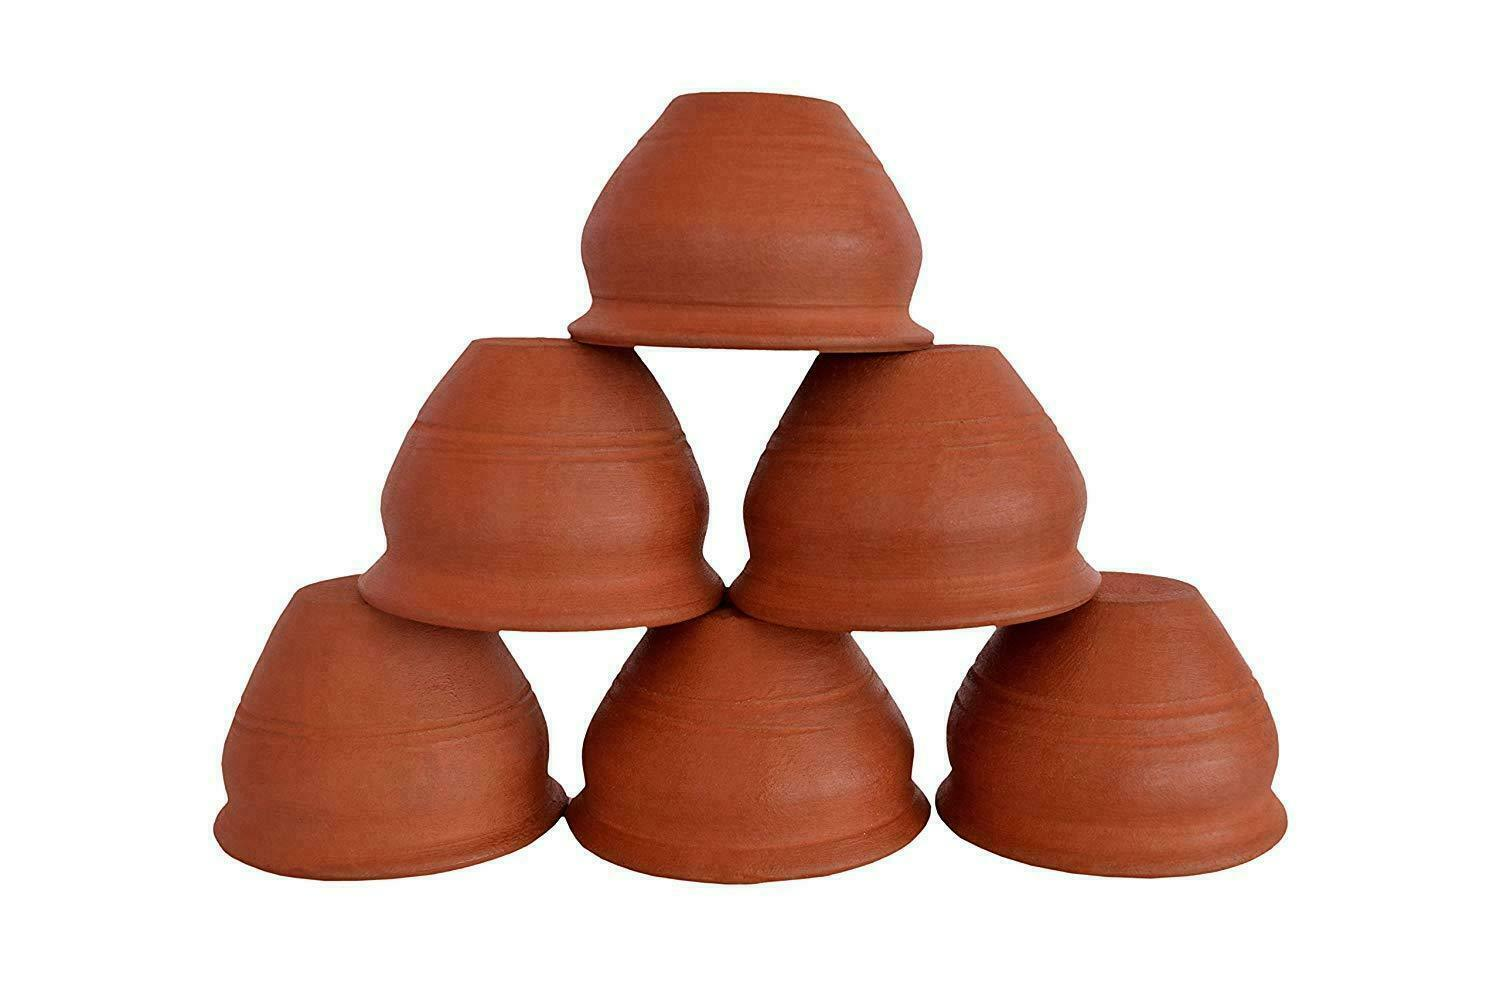 Earthen Clay Tea Cups Coffee Mugs Indian Chai Kulhar For Tea Coffee Milk 6 PCs